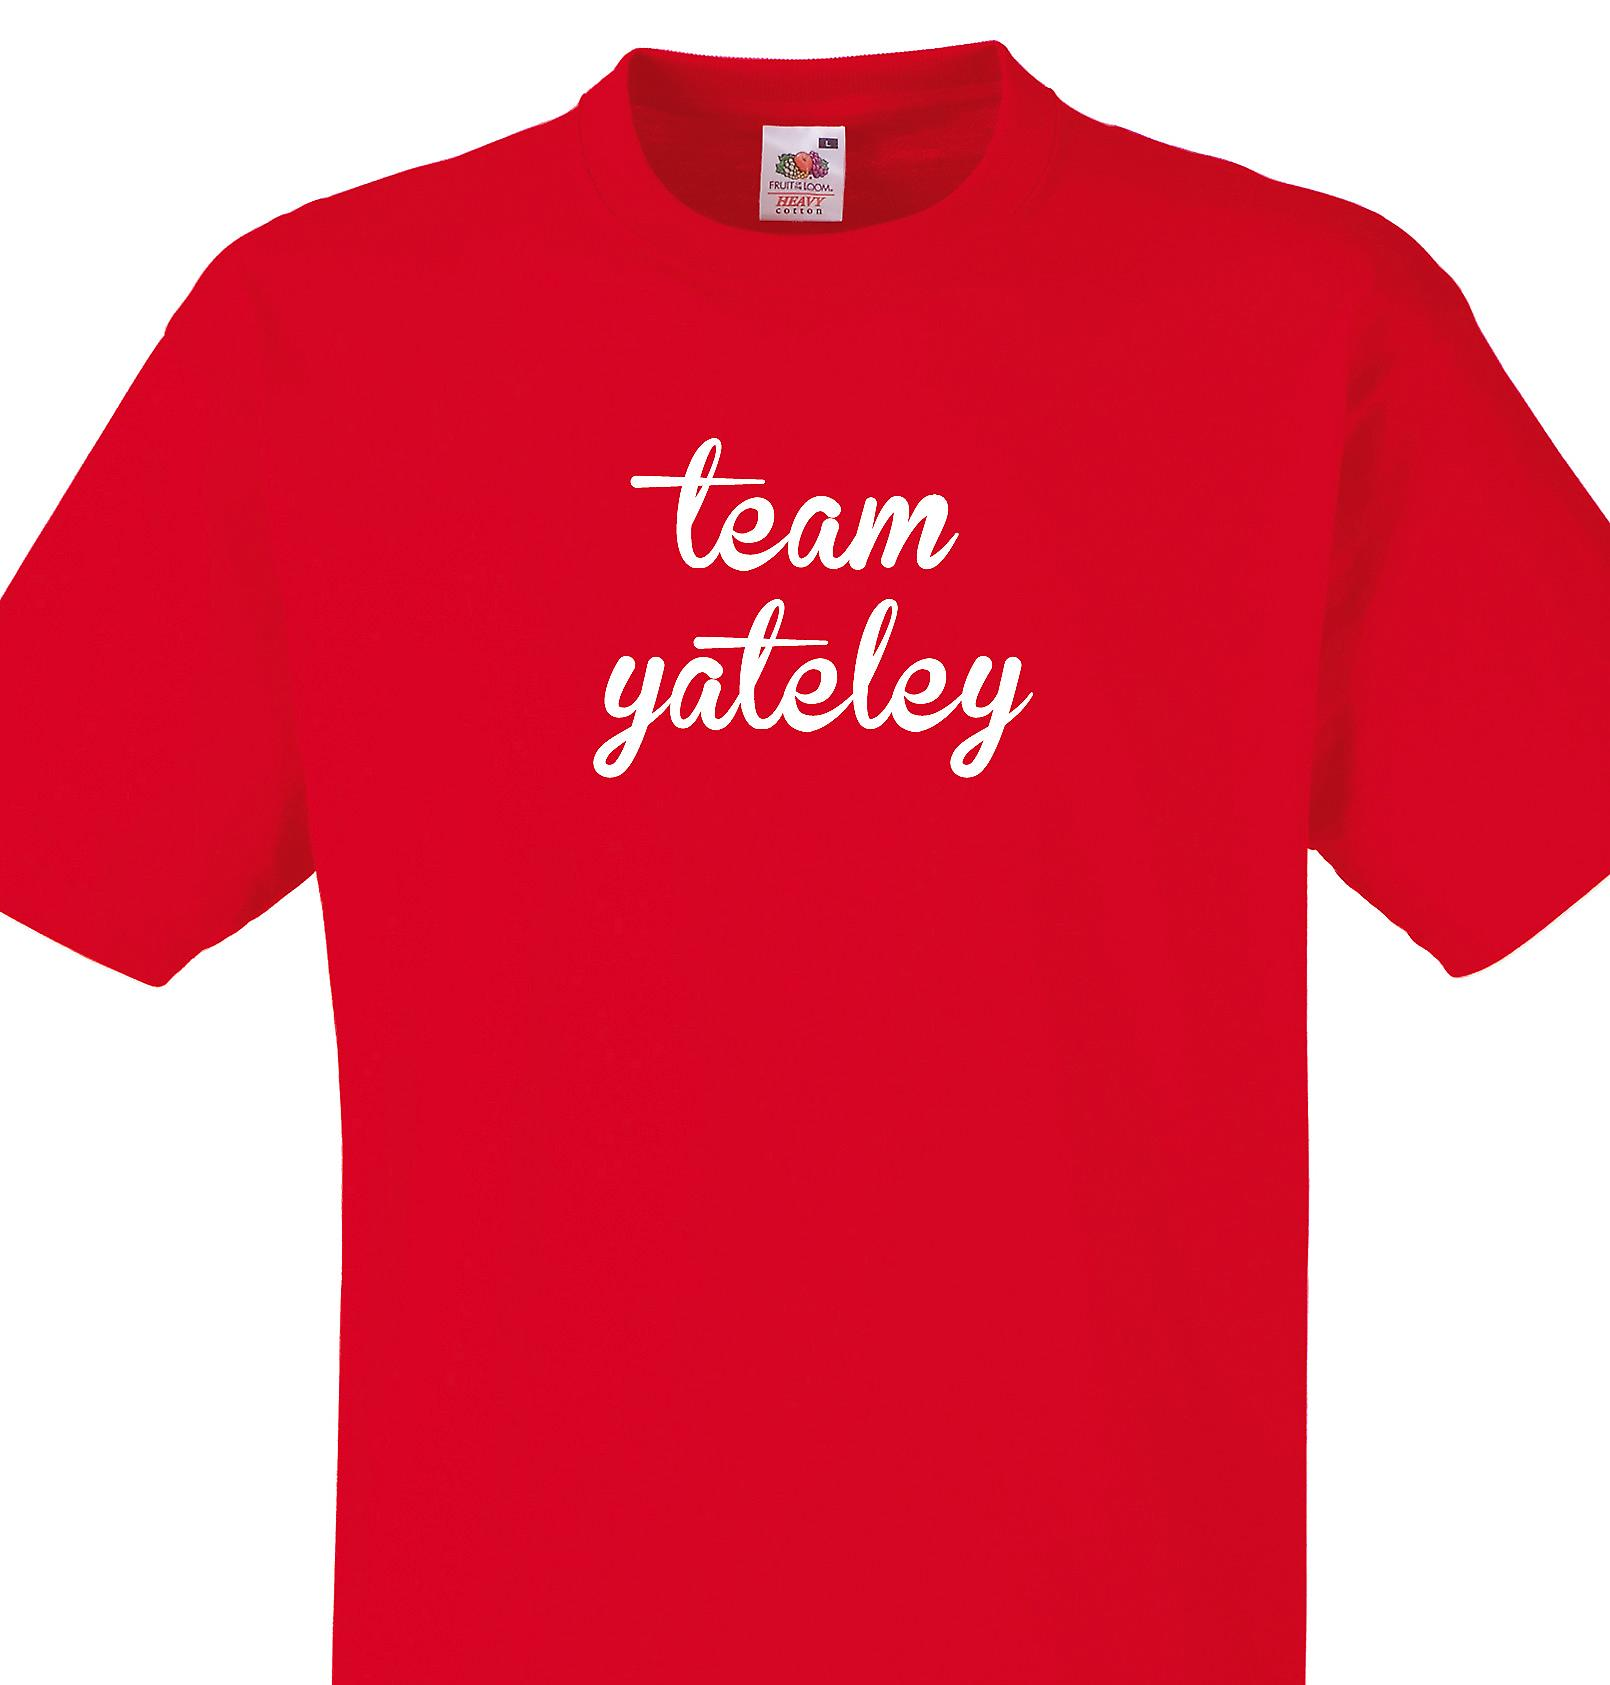 Team Yateley Red T shirt